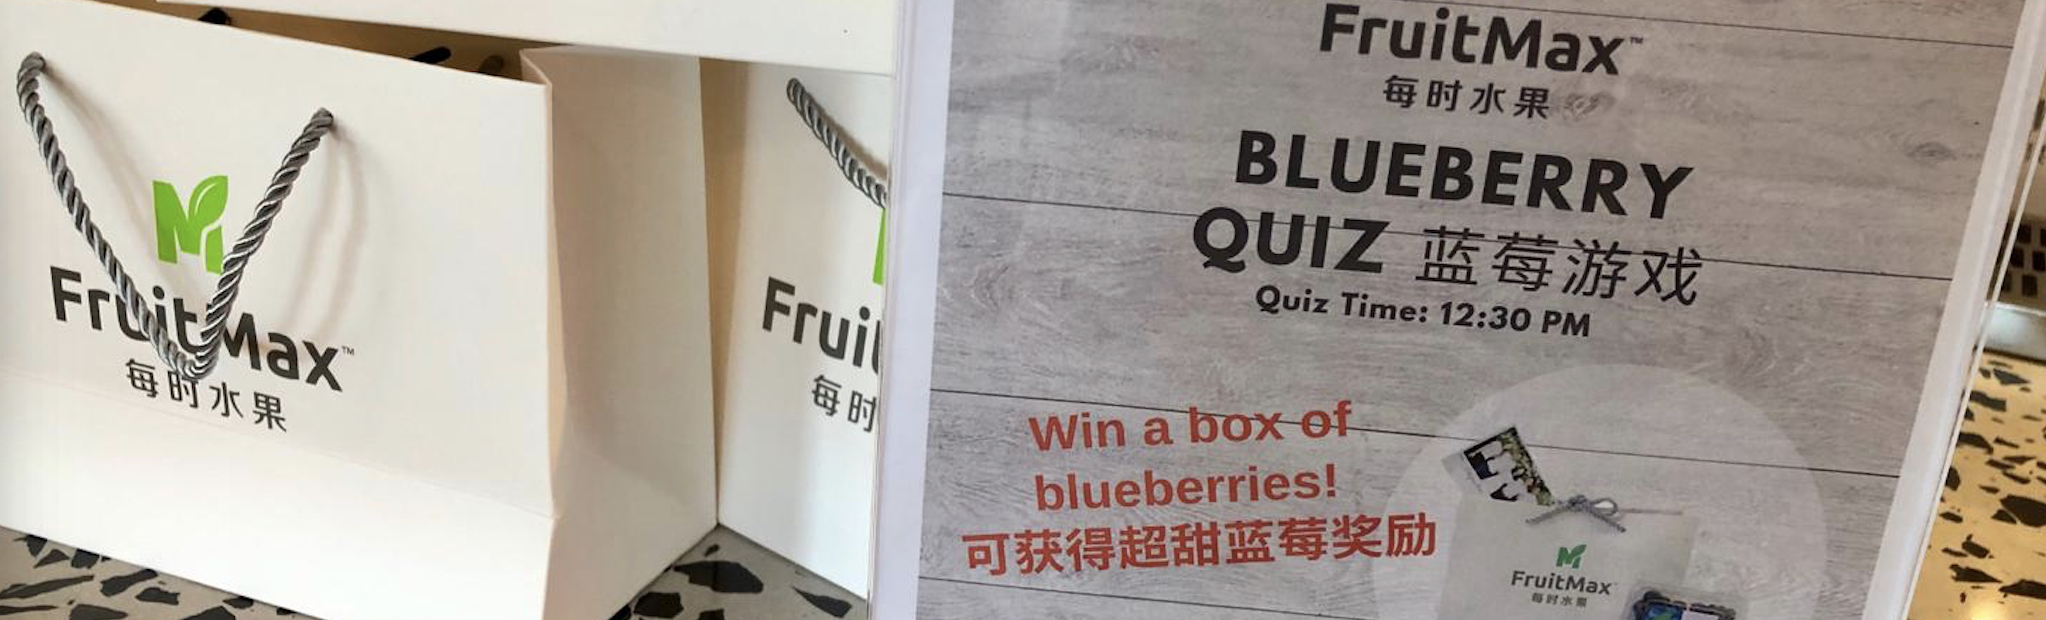 Quiz blueberries FruitMax top3